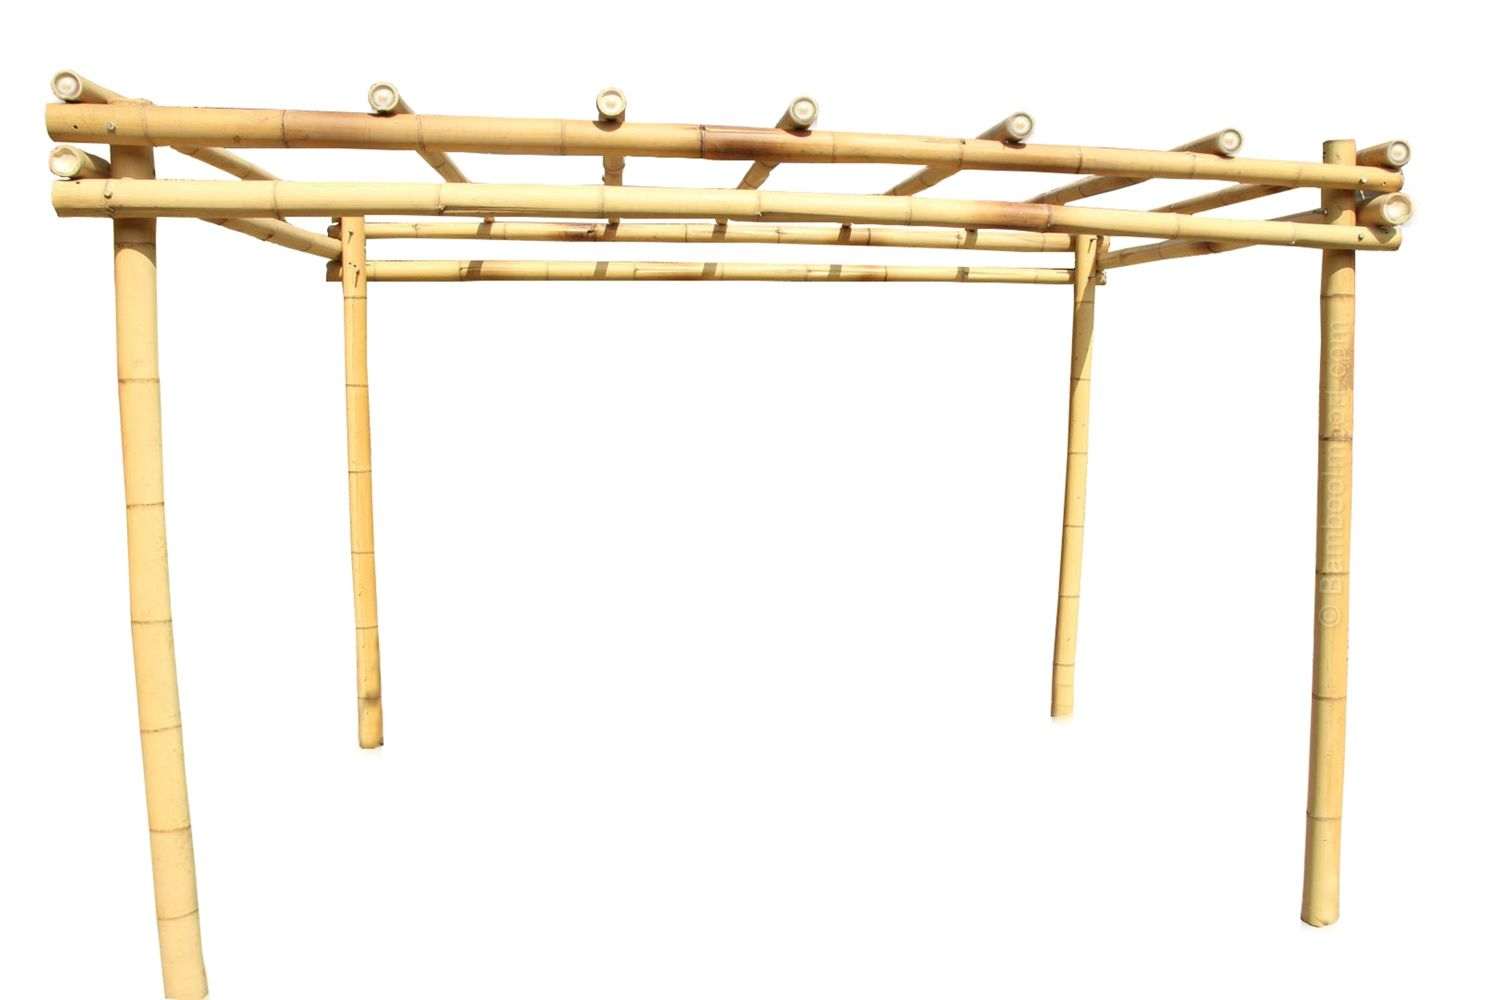 Tonnelle Bambou How To Build A Bamboo Pergola Comment Construire